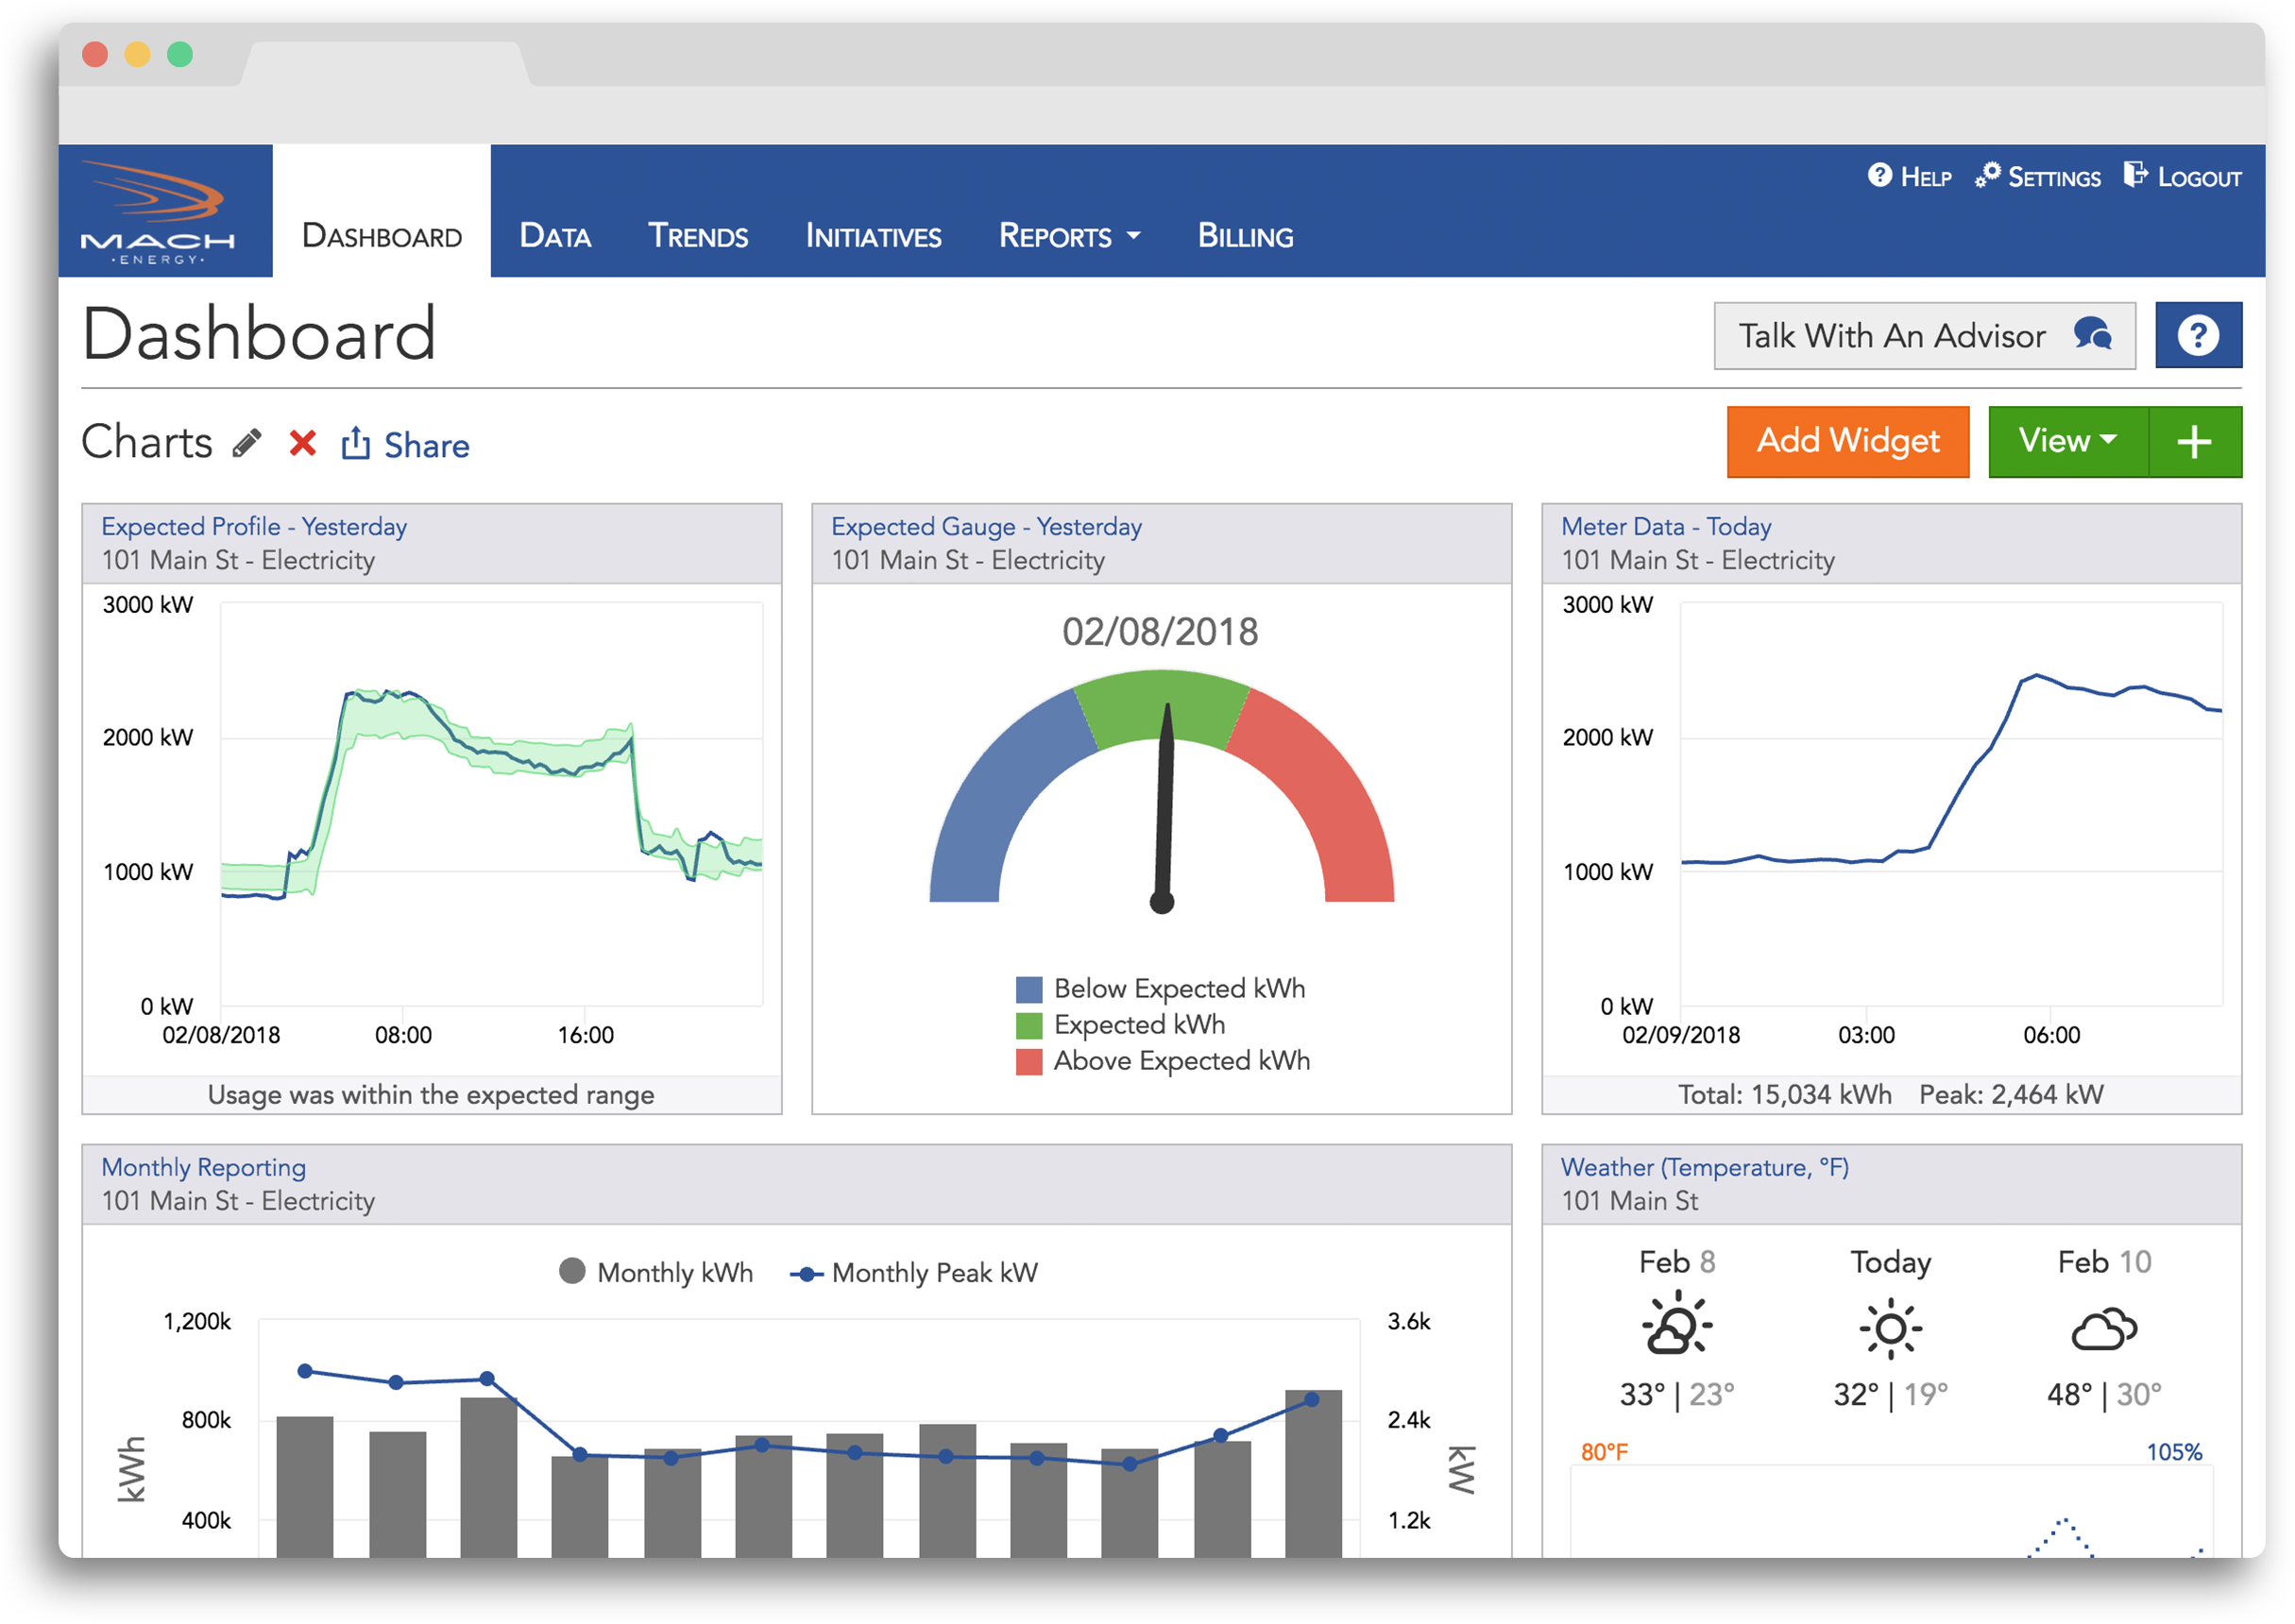 Customizable - Configure dashboards to quickly view what matters most to you